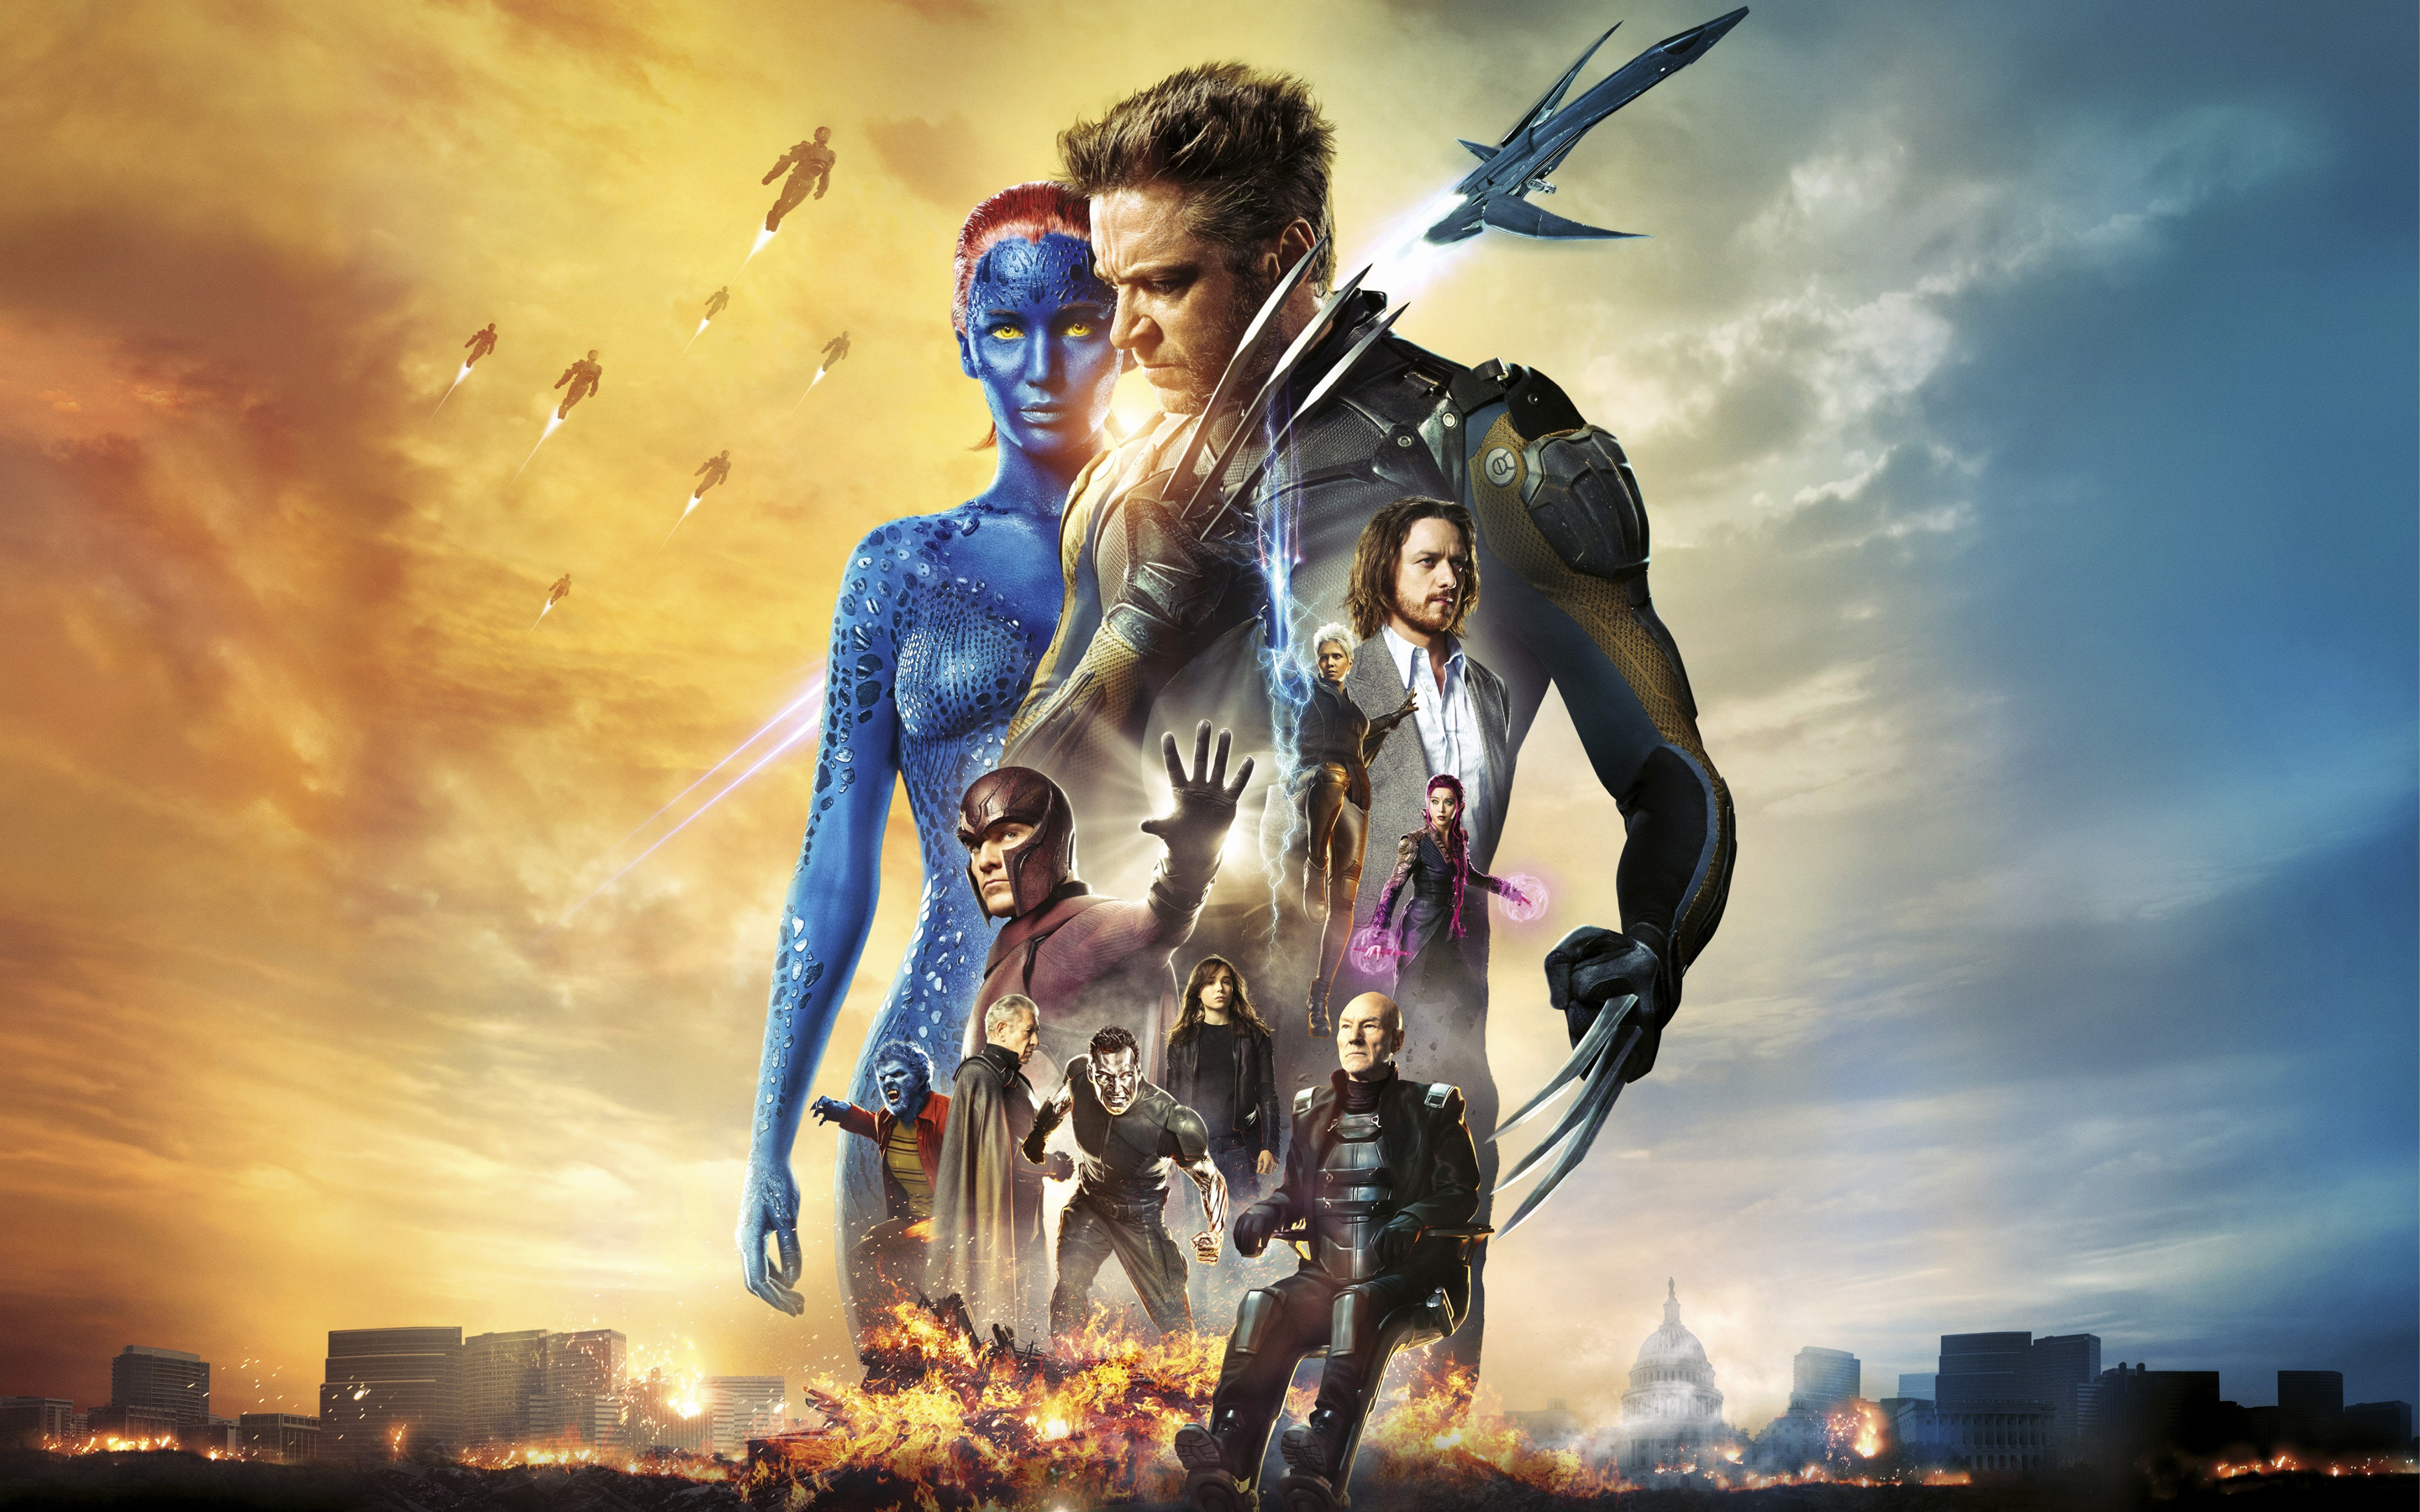 Men Days of Future Past Movie Wallpapers HD Wallpapers 2880x1800